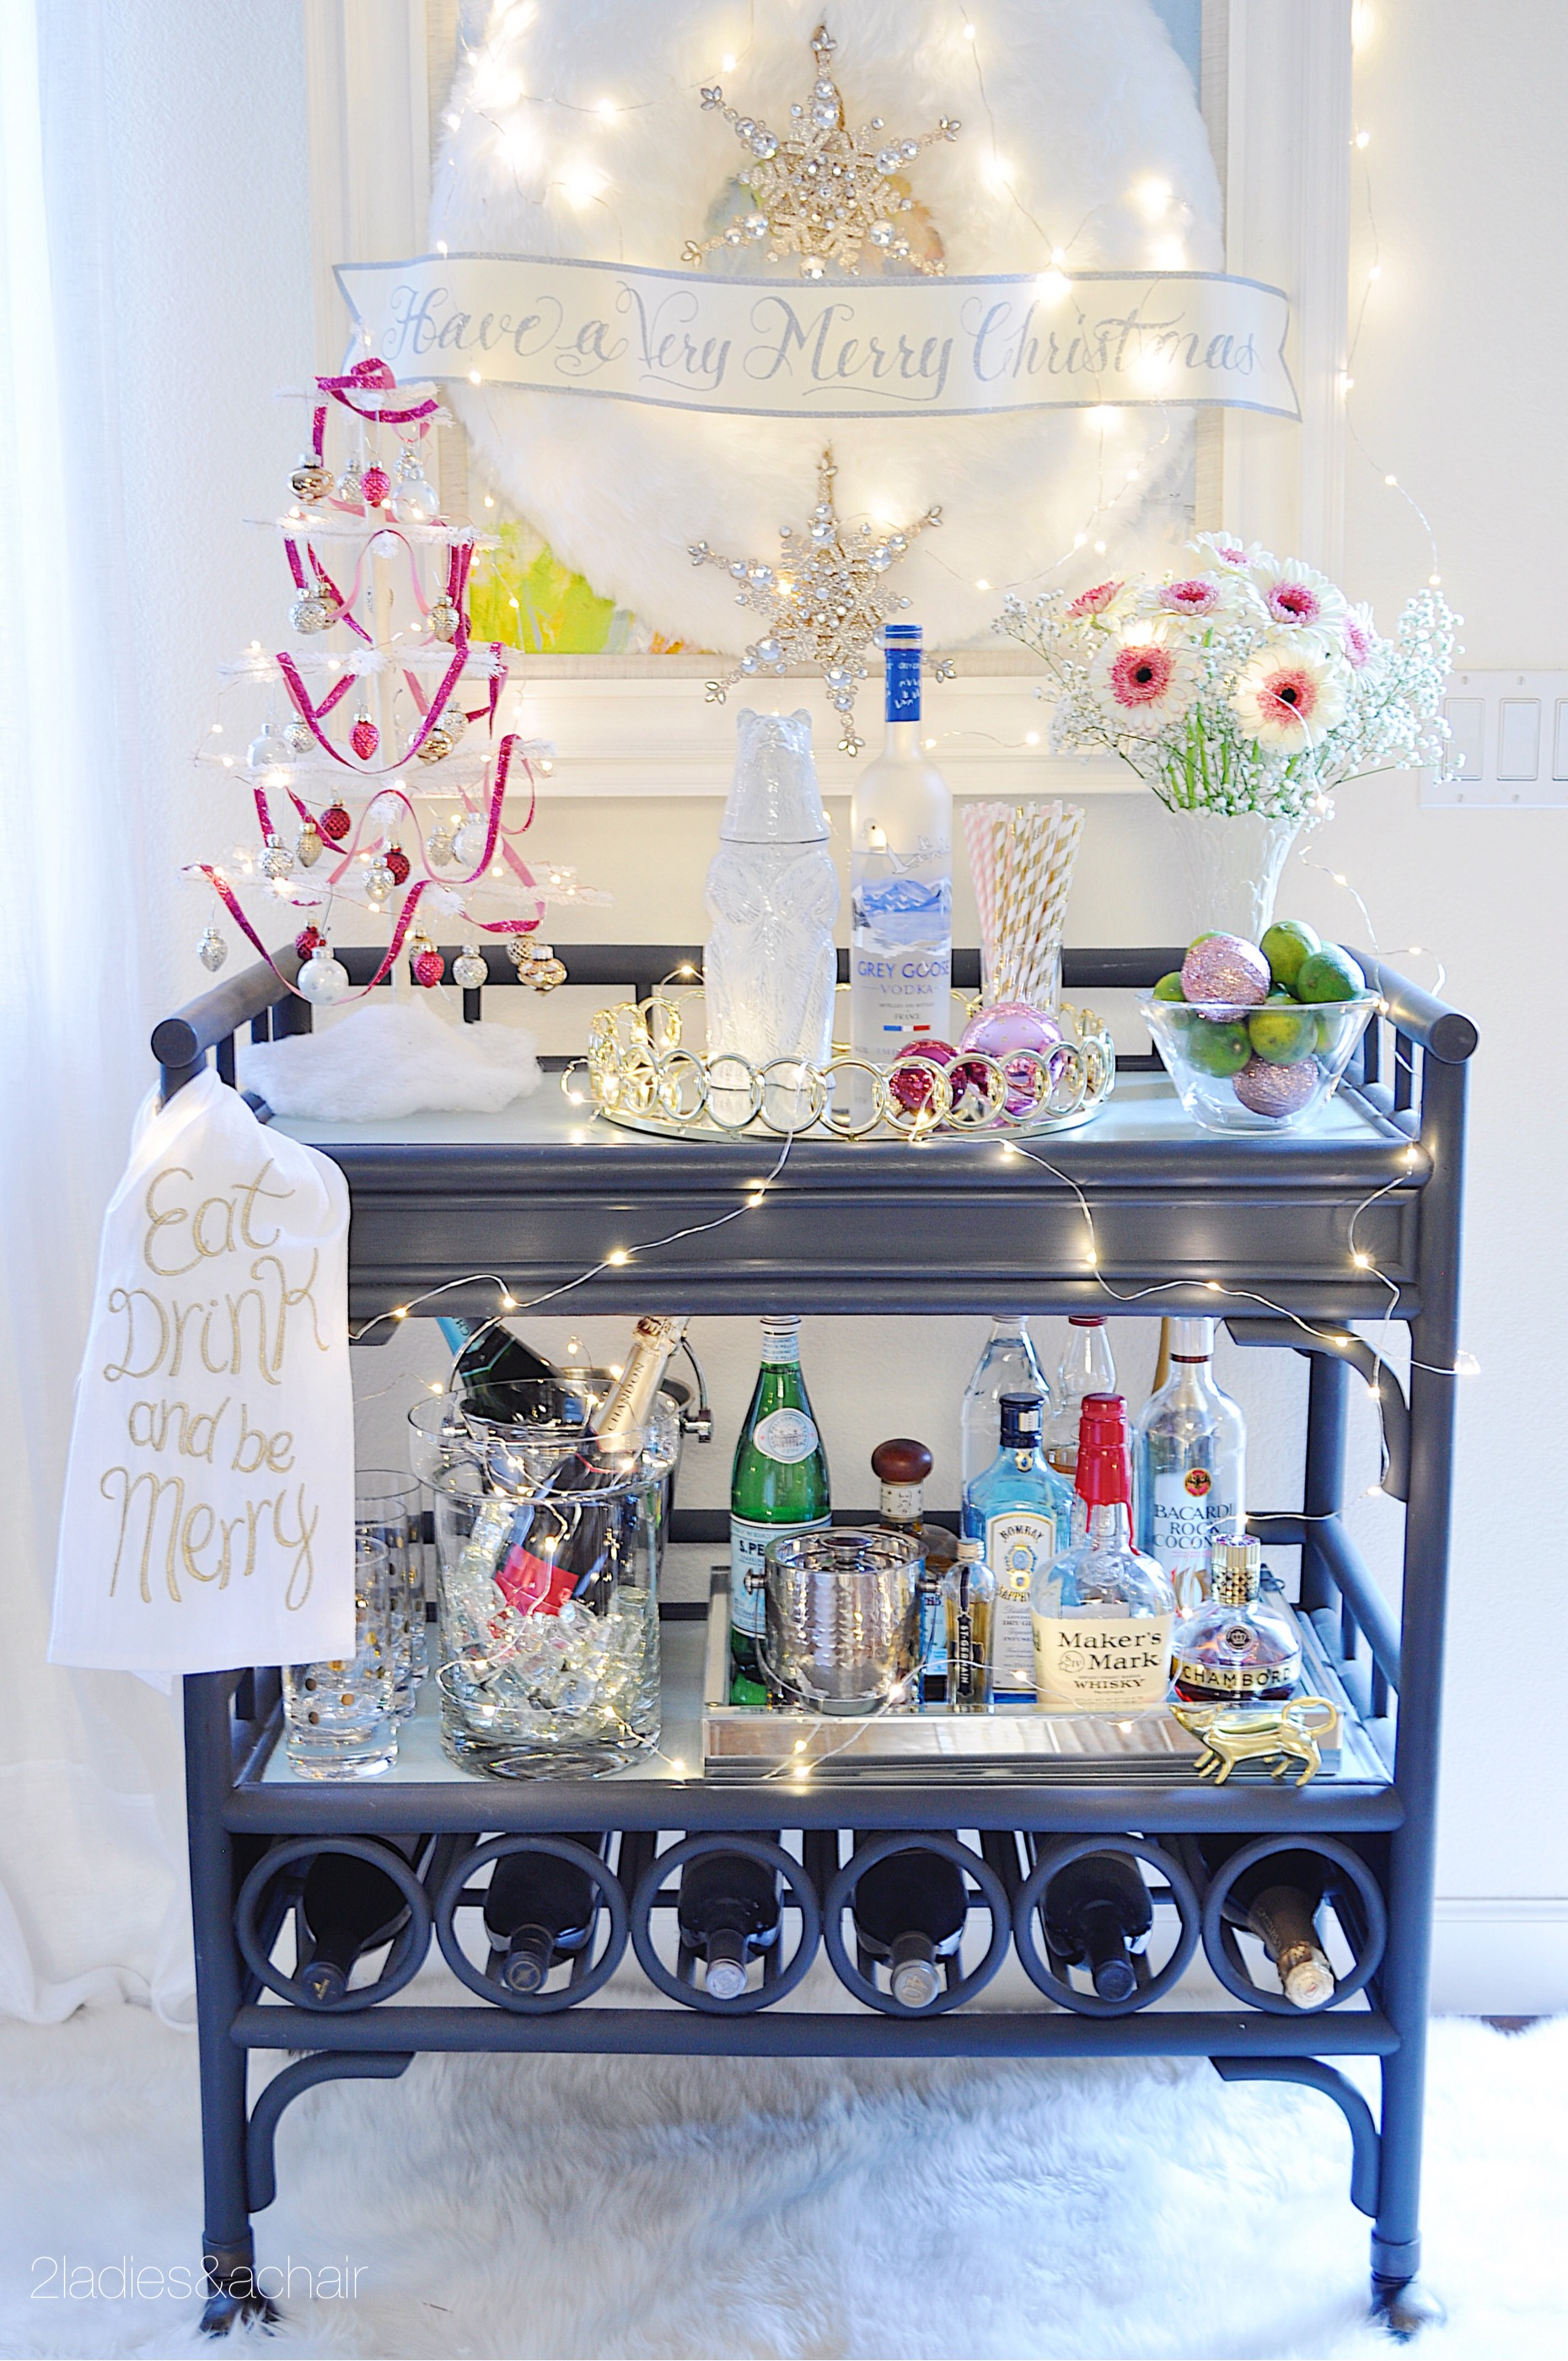 This bar cart is ready to serve!